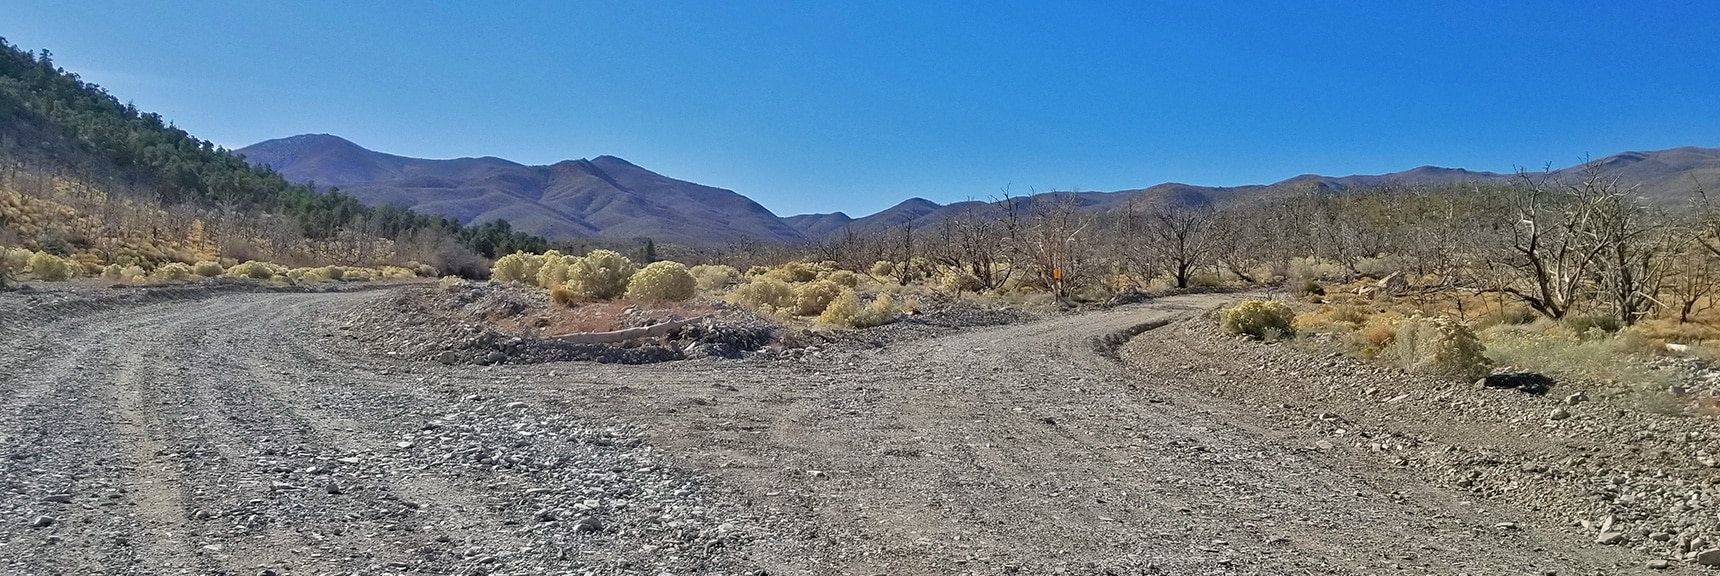 Right Turn Onto Harris Mountain Road. Note the Burn Area.   Harris Springs Rd, Harris Mountain Rd   Spring Mountains Wilderness, Nevada